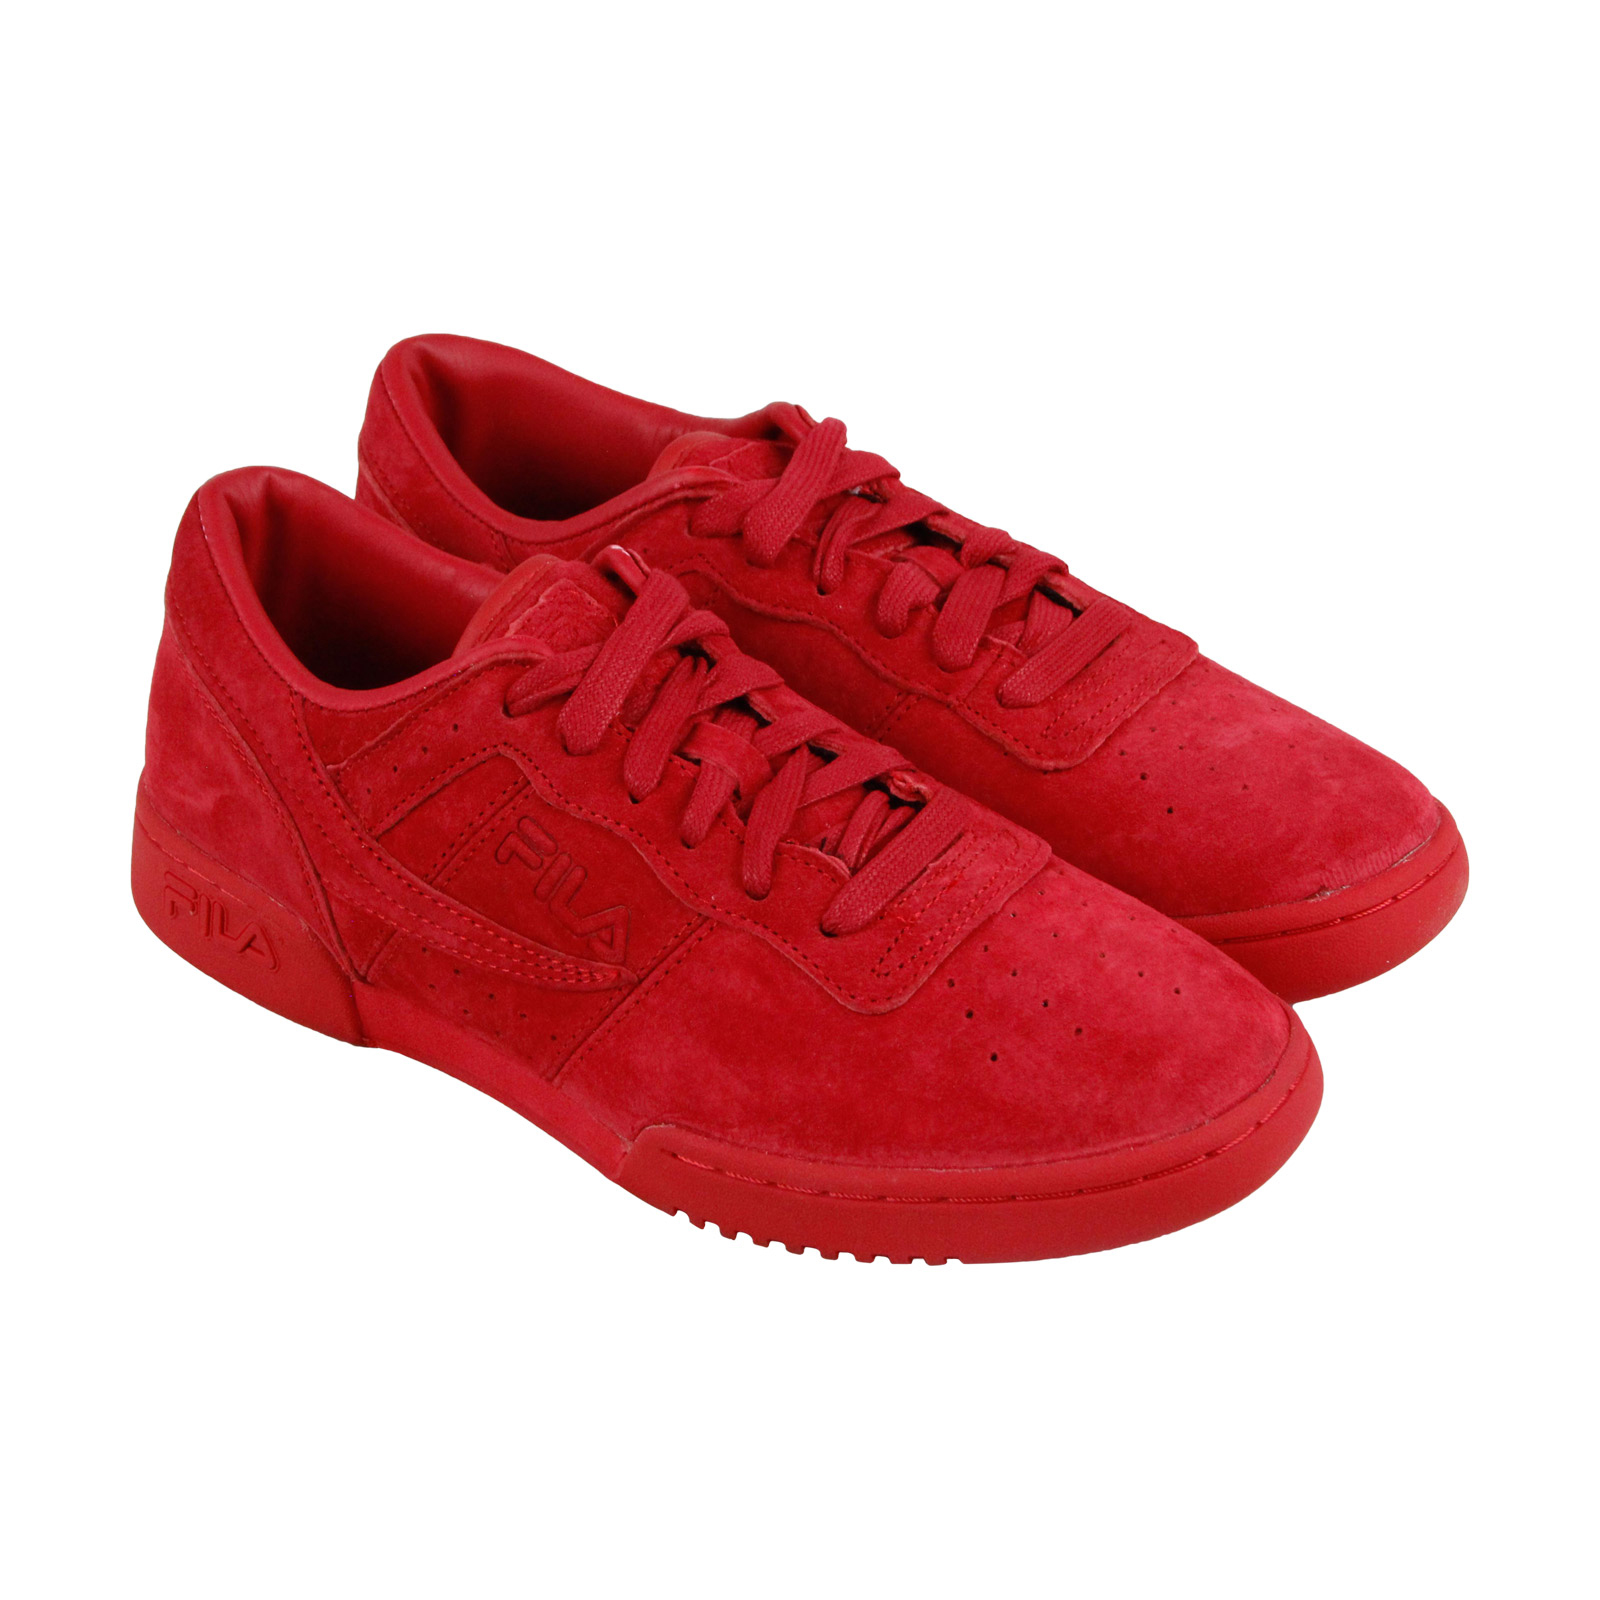 Fila Original Fitness Mens Red Suede Lace Up Sneakers Shoes by Fila